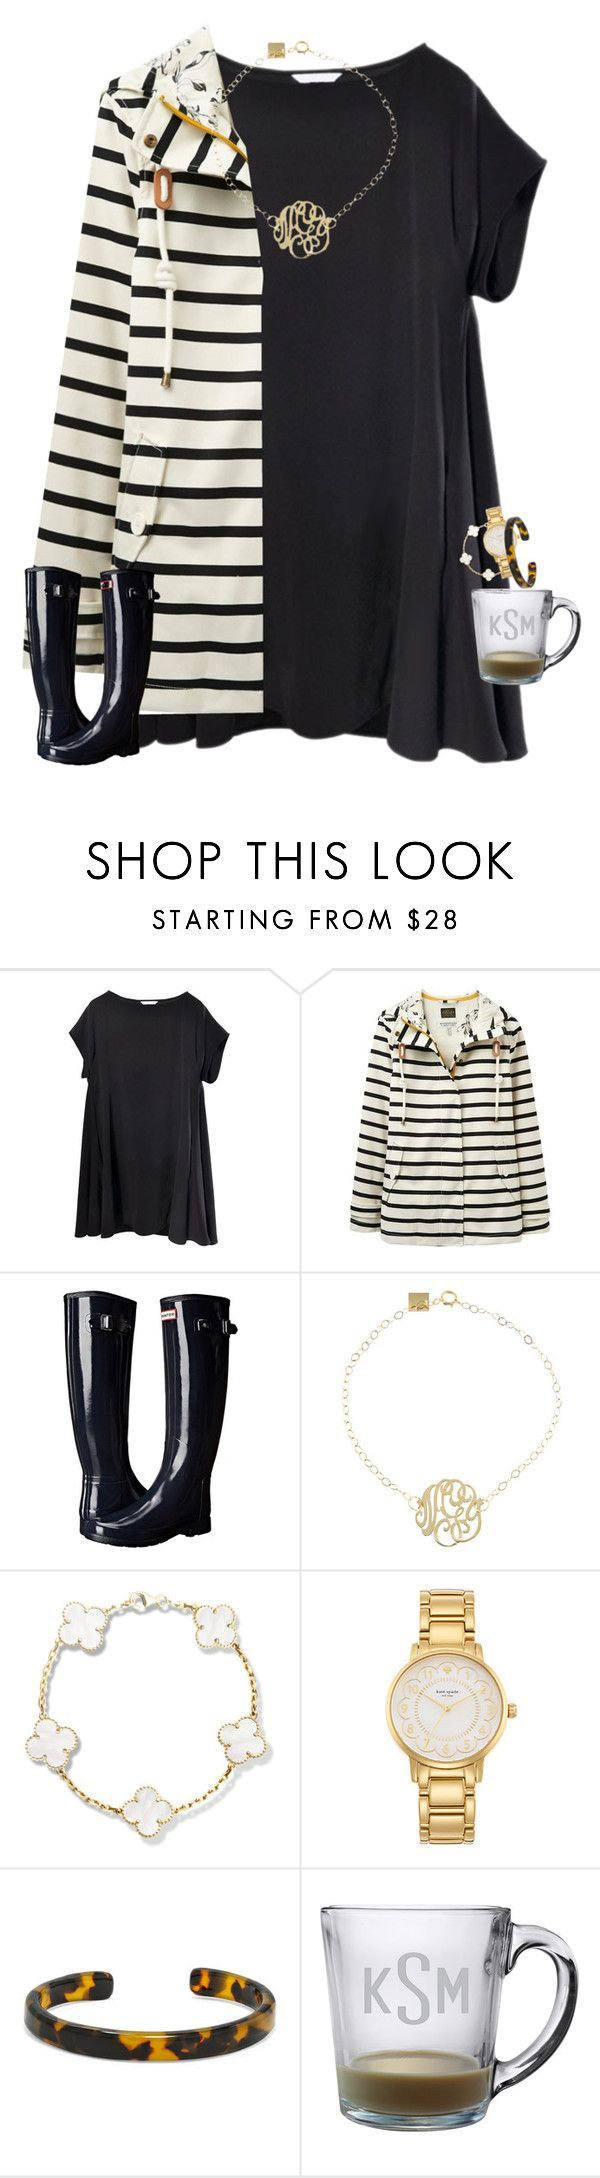 """Fri yay"" by tristin-loves-dance ❤ liked on Polyvore featuring Joules, Hunter, Ginette NY, Kate Spade and BaubleBar"